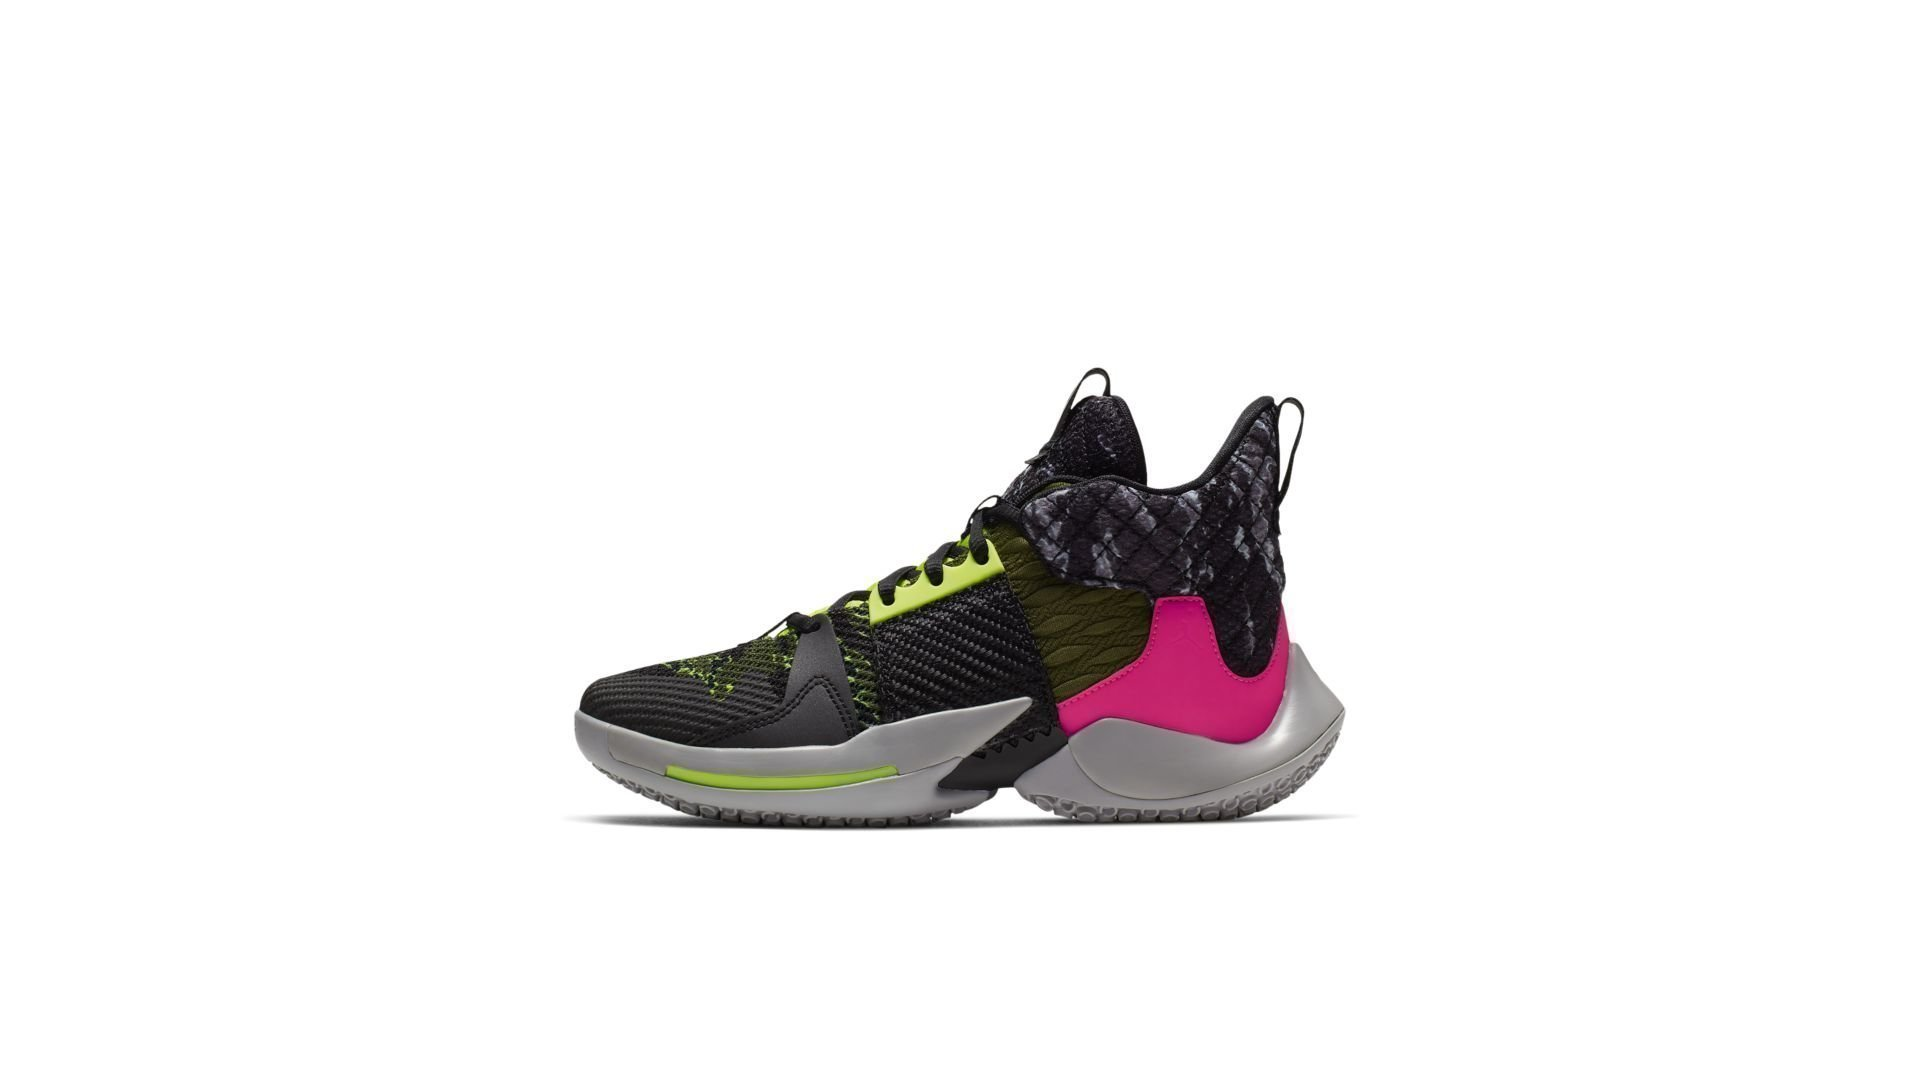 Jordan Why Not 0.2 Don't Care (GS) (AO6218-003)